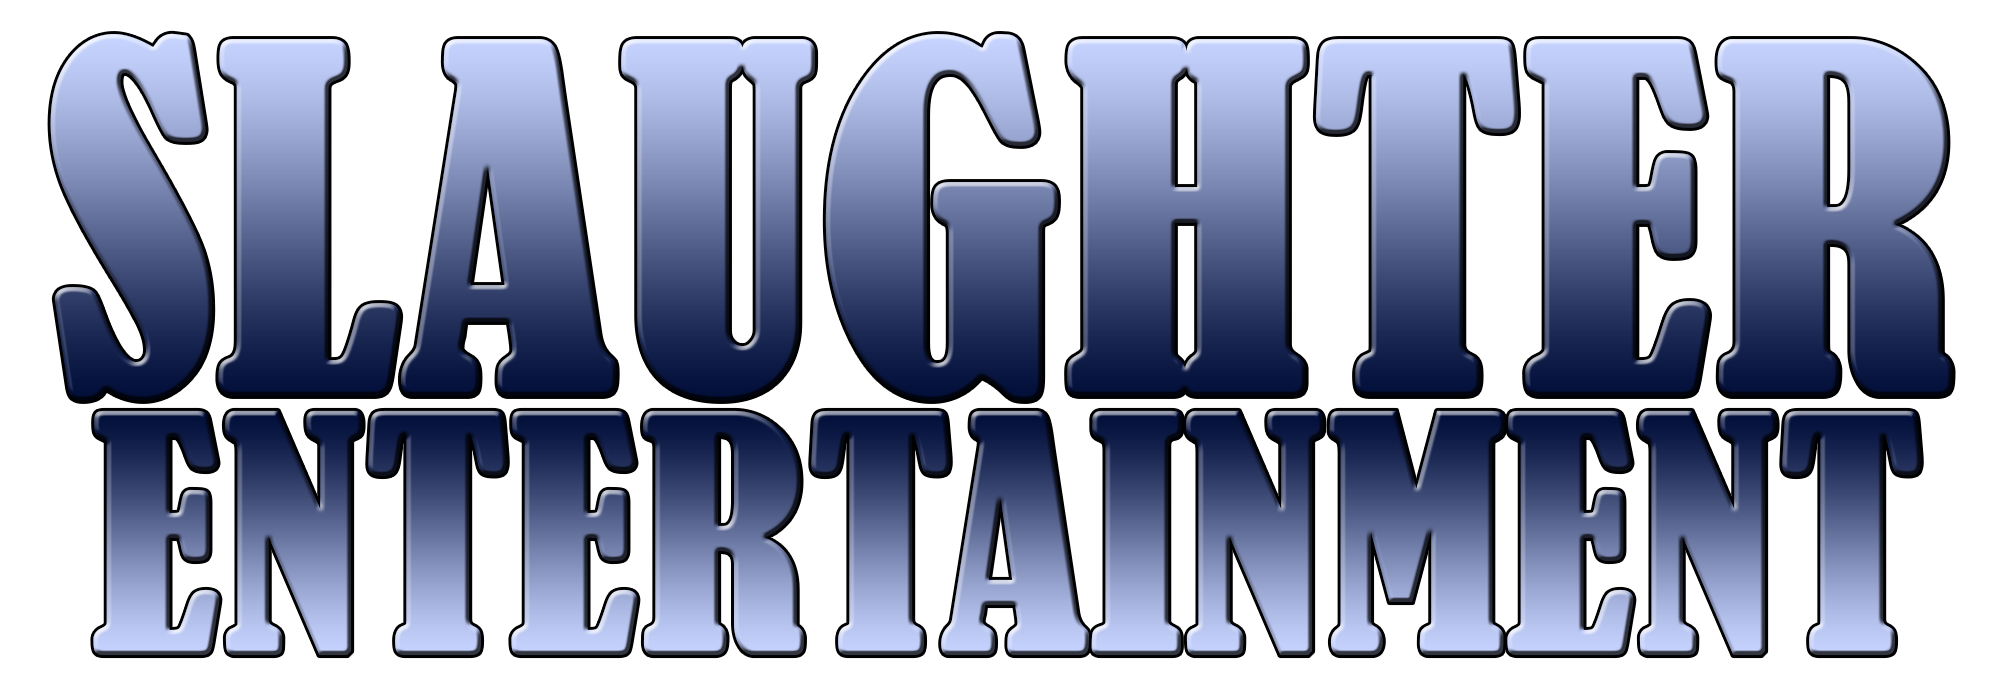 Slaughter band logo png. Entertainment providing great sound